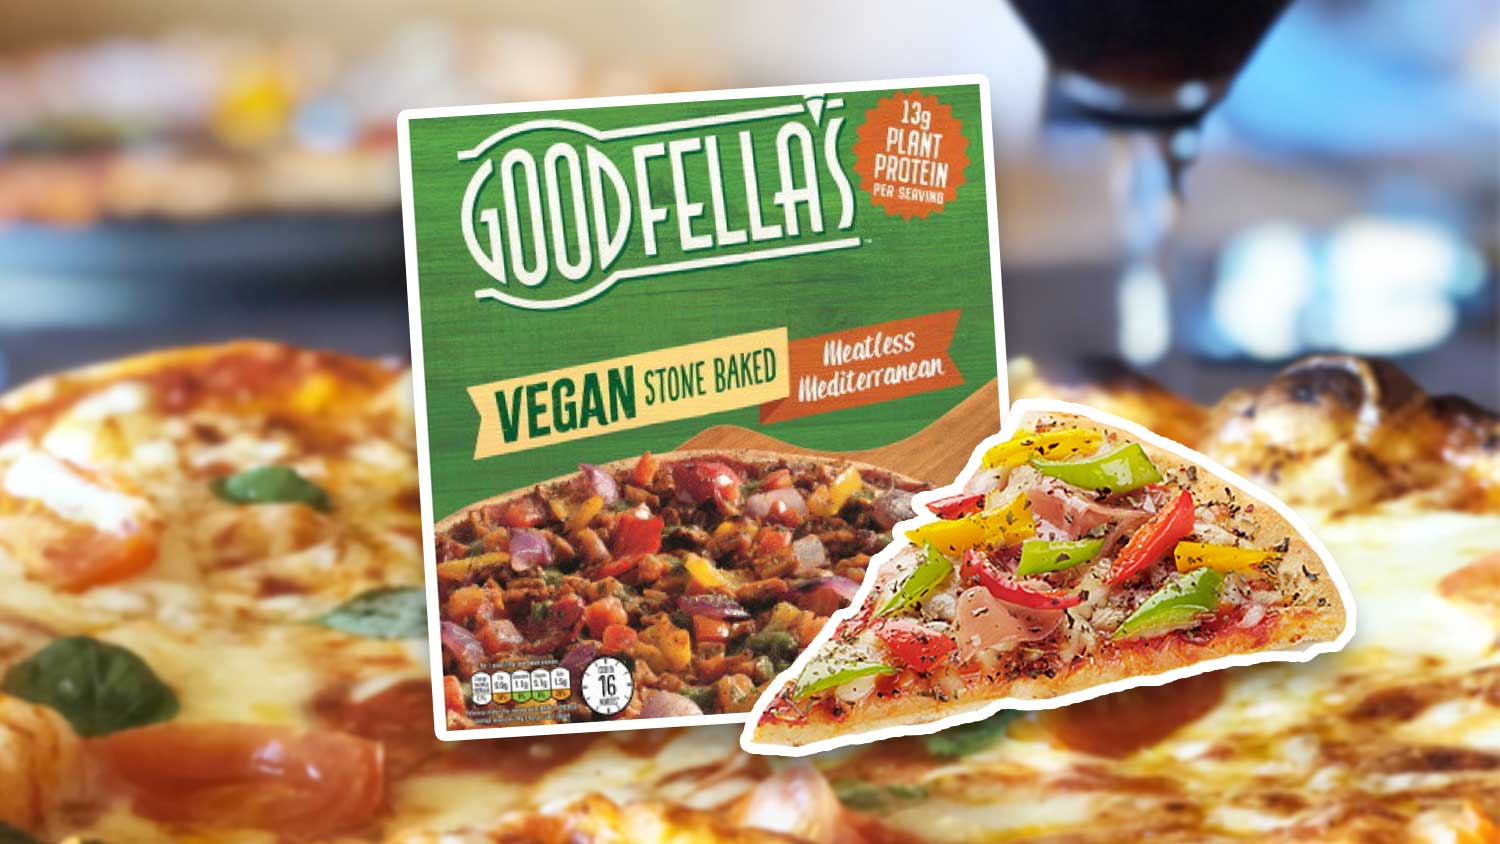 Goodfellas Just Launched a Meaty Mediterranean Vegan Pizza